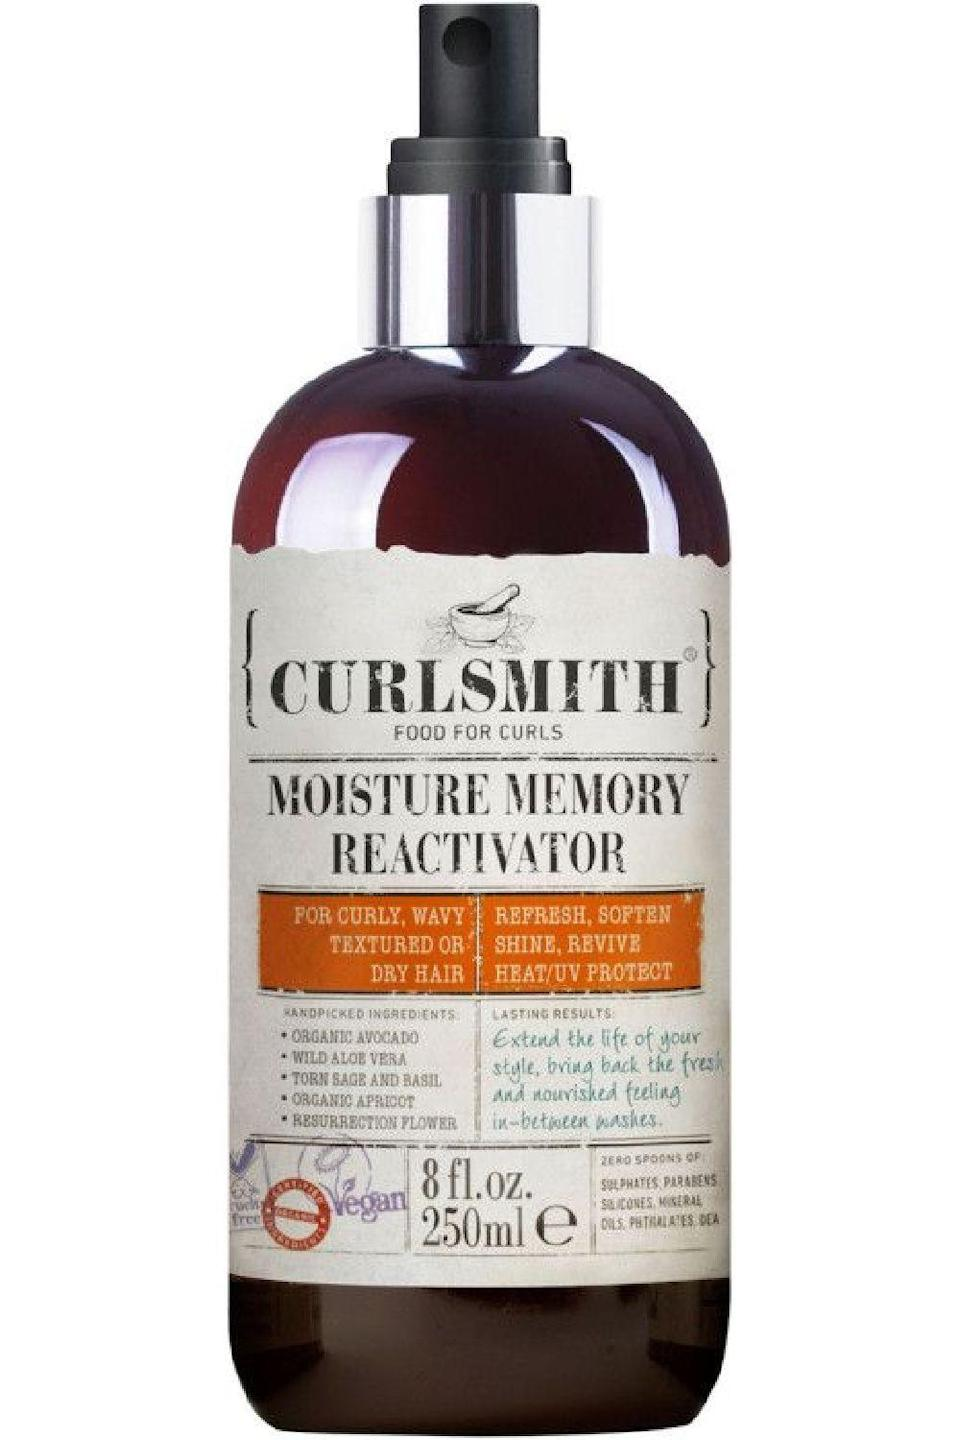 "<p><strong>CURLSMITH</strong></p><p>ulta.com</p><p><strong>$24.00</strong></p><p><a href=""https://go.redirectingat.com?id=74968X1596630&url=https%3A%2F%2Fwww.ulta.com%2Fmoisture-memory-reactivator%3FproductId%3DxlsImpprod18851252&sref=https%3A%2F%2Fwww.cosmopolitan.com%2Fstyle-beauty%2Fbeauty%2Fg34357706%2Fbest-hair-moisturizer-sprays%2F"" rel=""nofollow noopener"" target=""_blank"" data-ylk=""slk:Shop Now"" class=""link rapid-noclick-resp"">Shop Now</a></p><p>When you need to give your curls a little TLC in between washes, grab a bottle of this moisture spray, which uses a nice blend of oils, like apricot kernel, <a href=""https://www.cosmopolitan.com/style-beauty/beauty/a33391868/olive-oil-for-hair/"" rel=""nofollow noopener"" target=""_blank"" data-ylk=""slk:olive"" class=""link rapid-noclick-resp"">olive</a>, coconut, and avocado, as well as aloe vera <strong>to add all the hydration, bounce, and elasticity</strong> back into your strands.</p>"